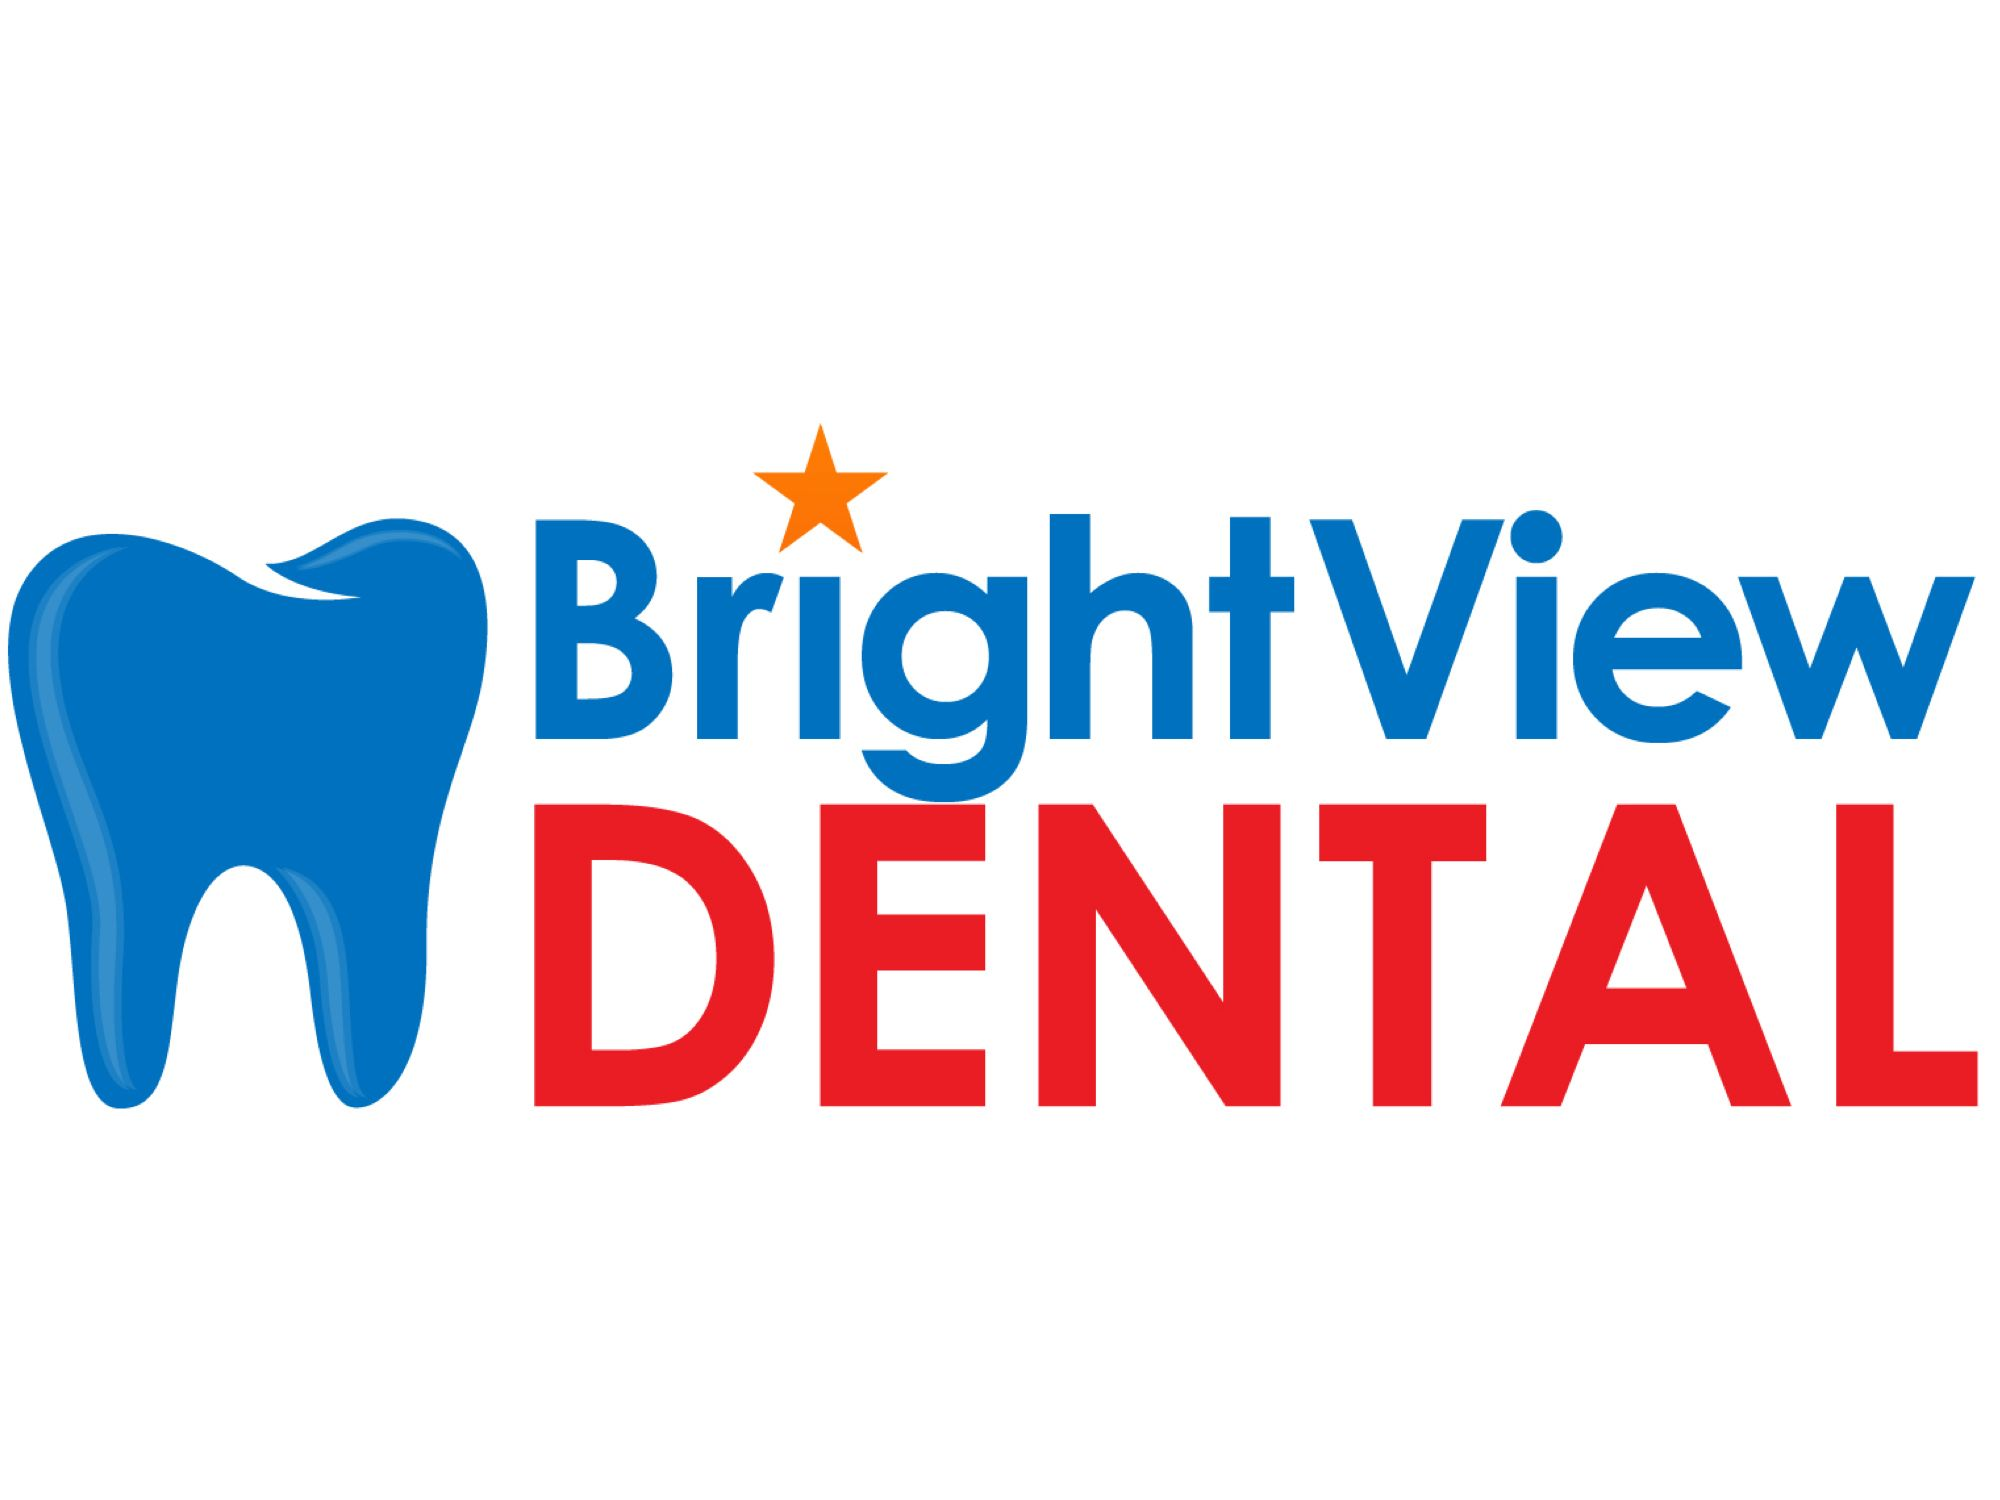 BrightView Dental in Strathroy, ON Open 7 days a week